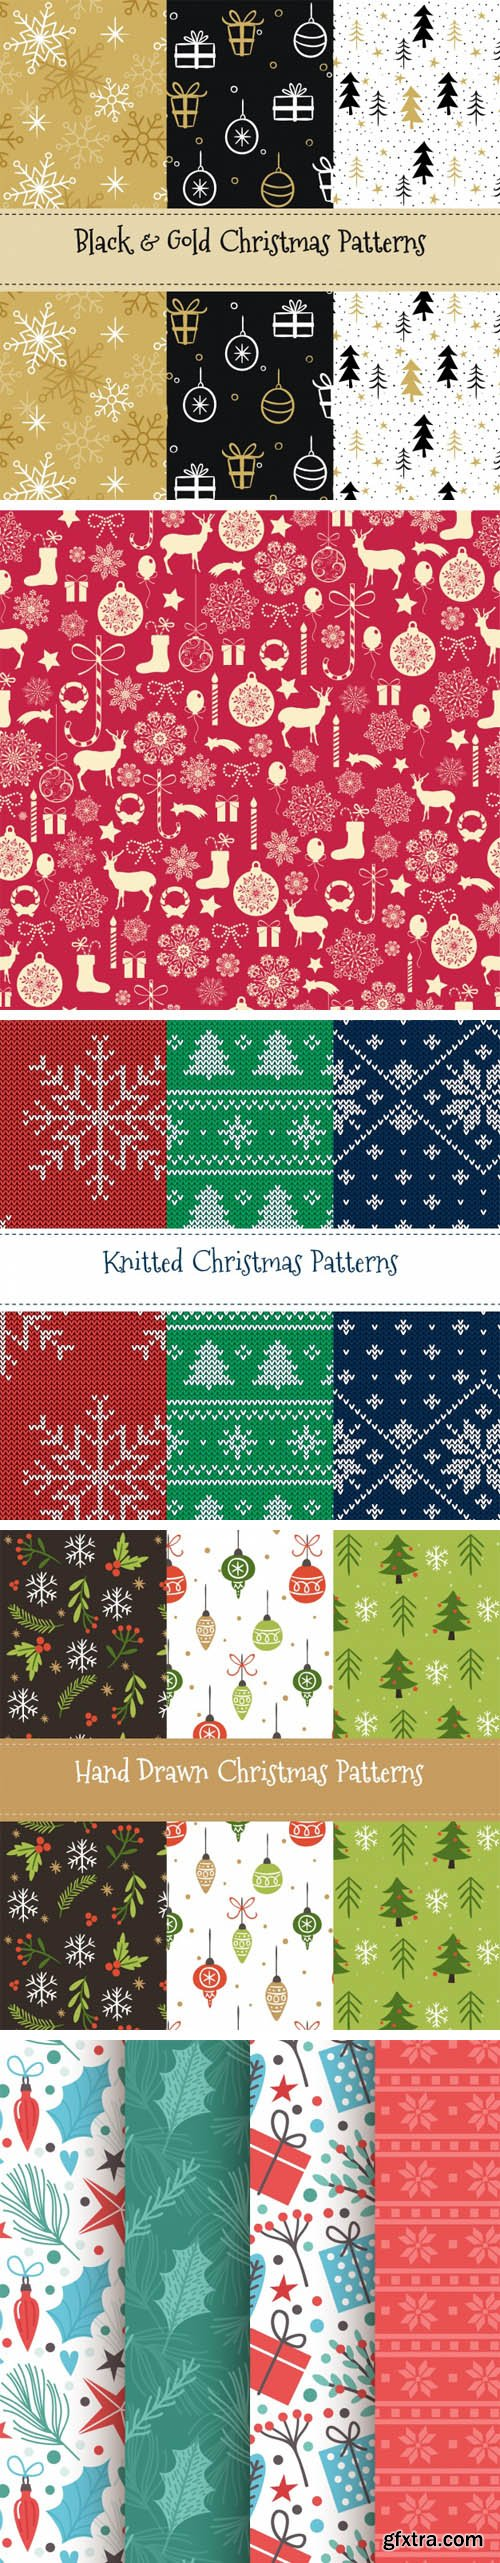 Christmas Patterns Vector Collection 4